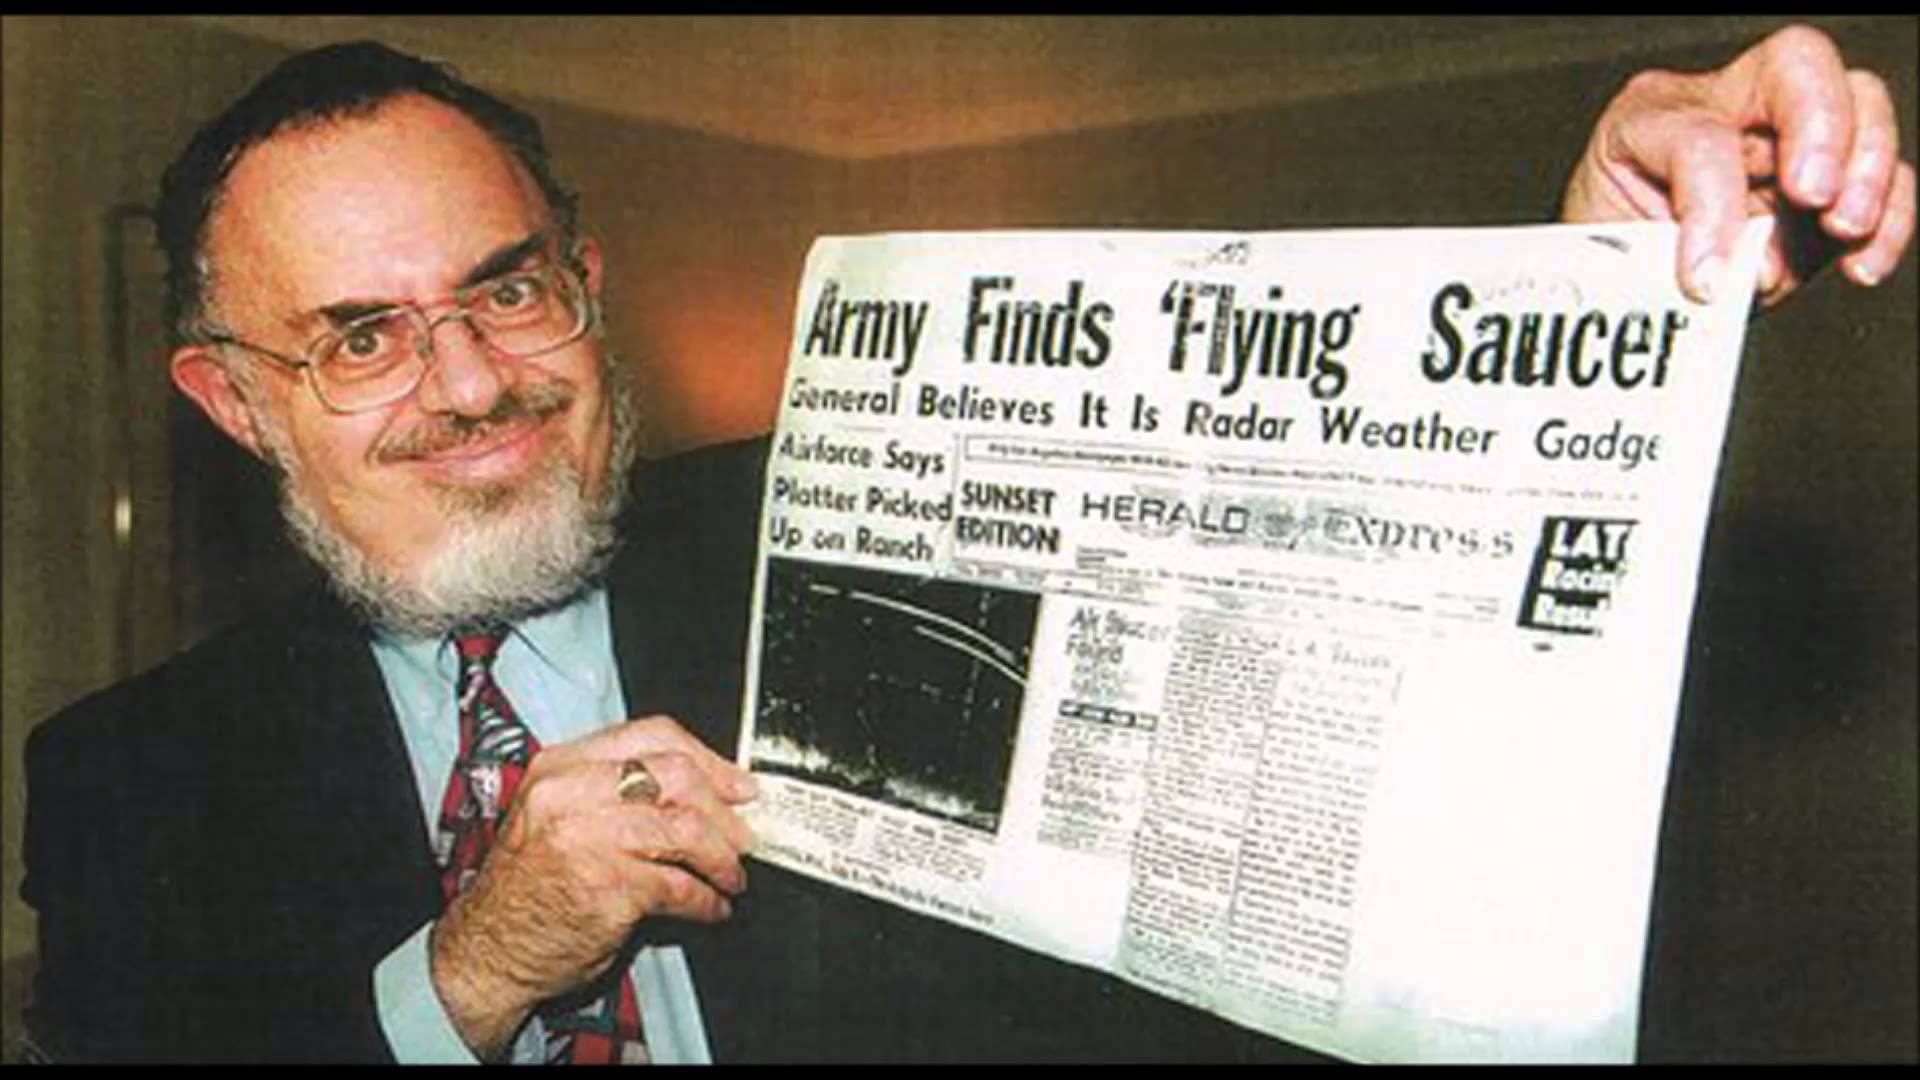 Roswell-Secrets-Of-Stanton-Friedman-One-Of-The-Top-UFO-Researchers.jpg